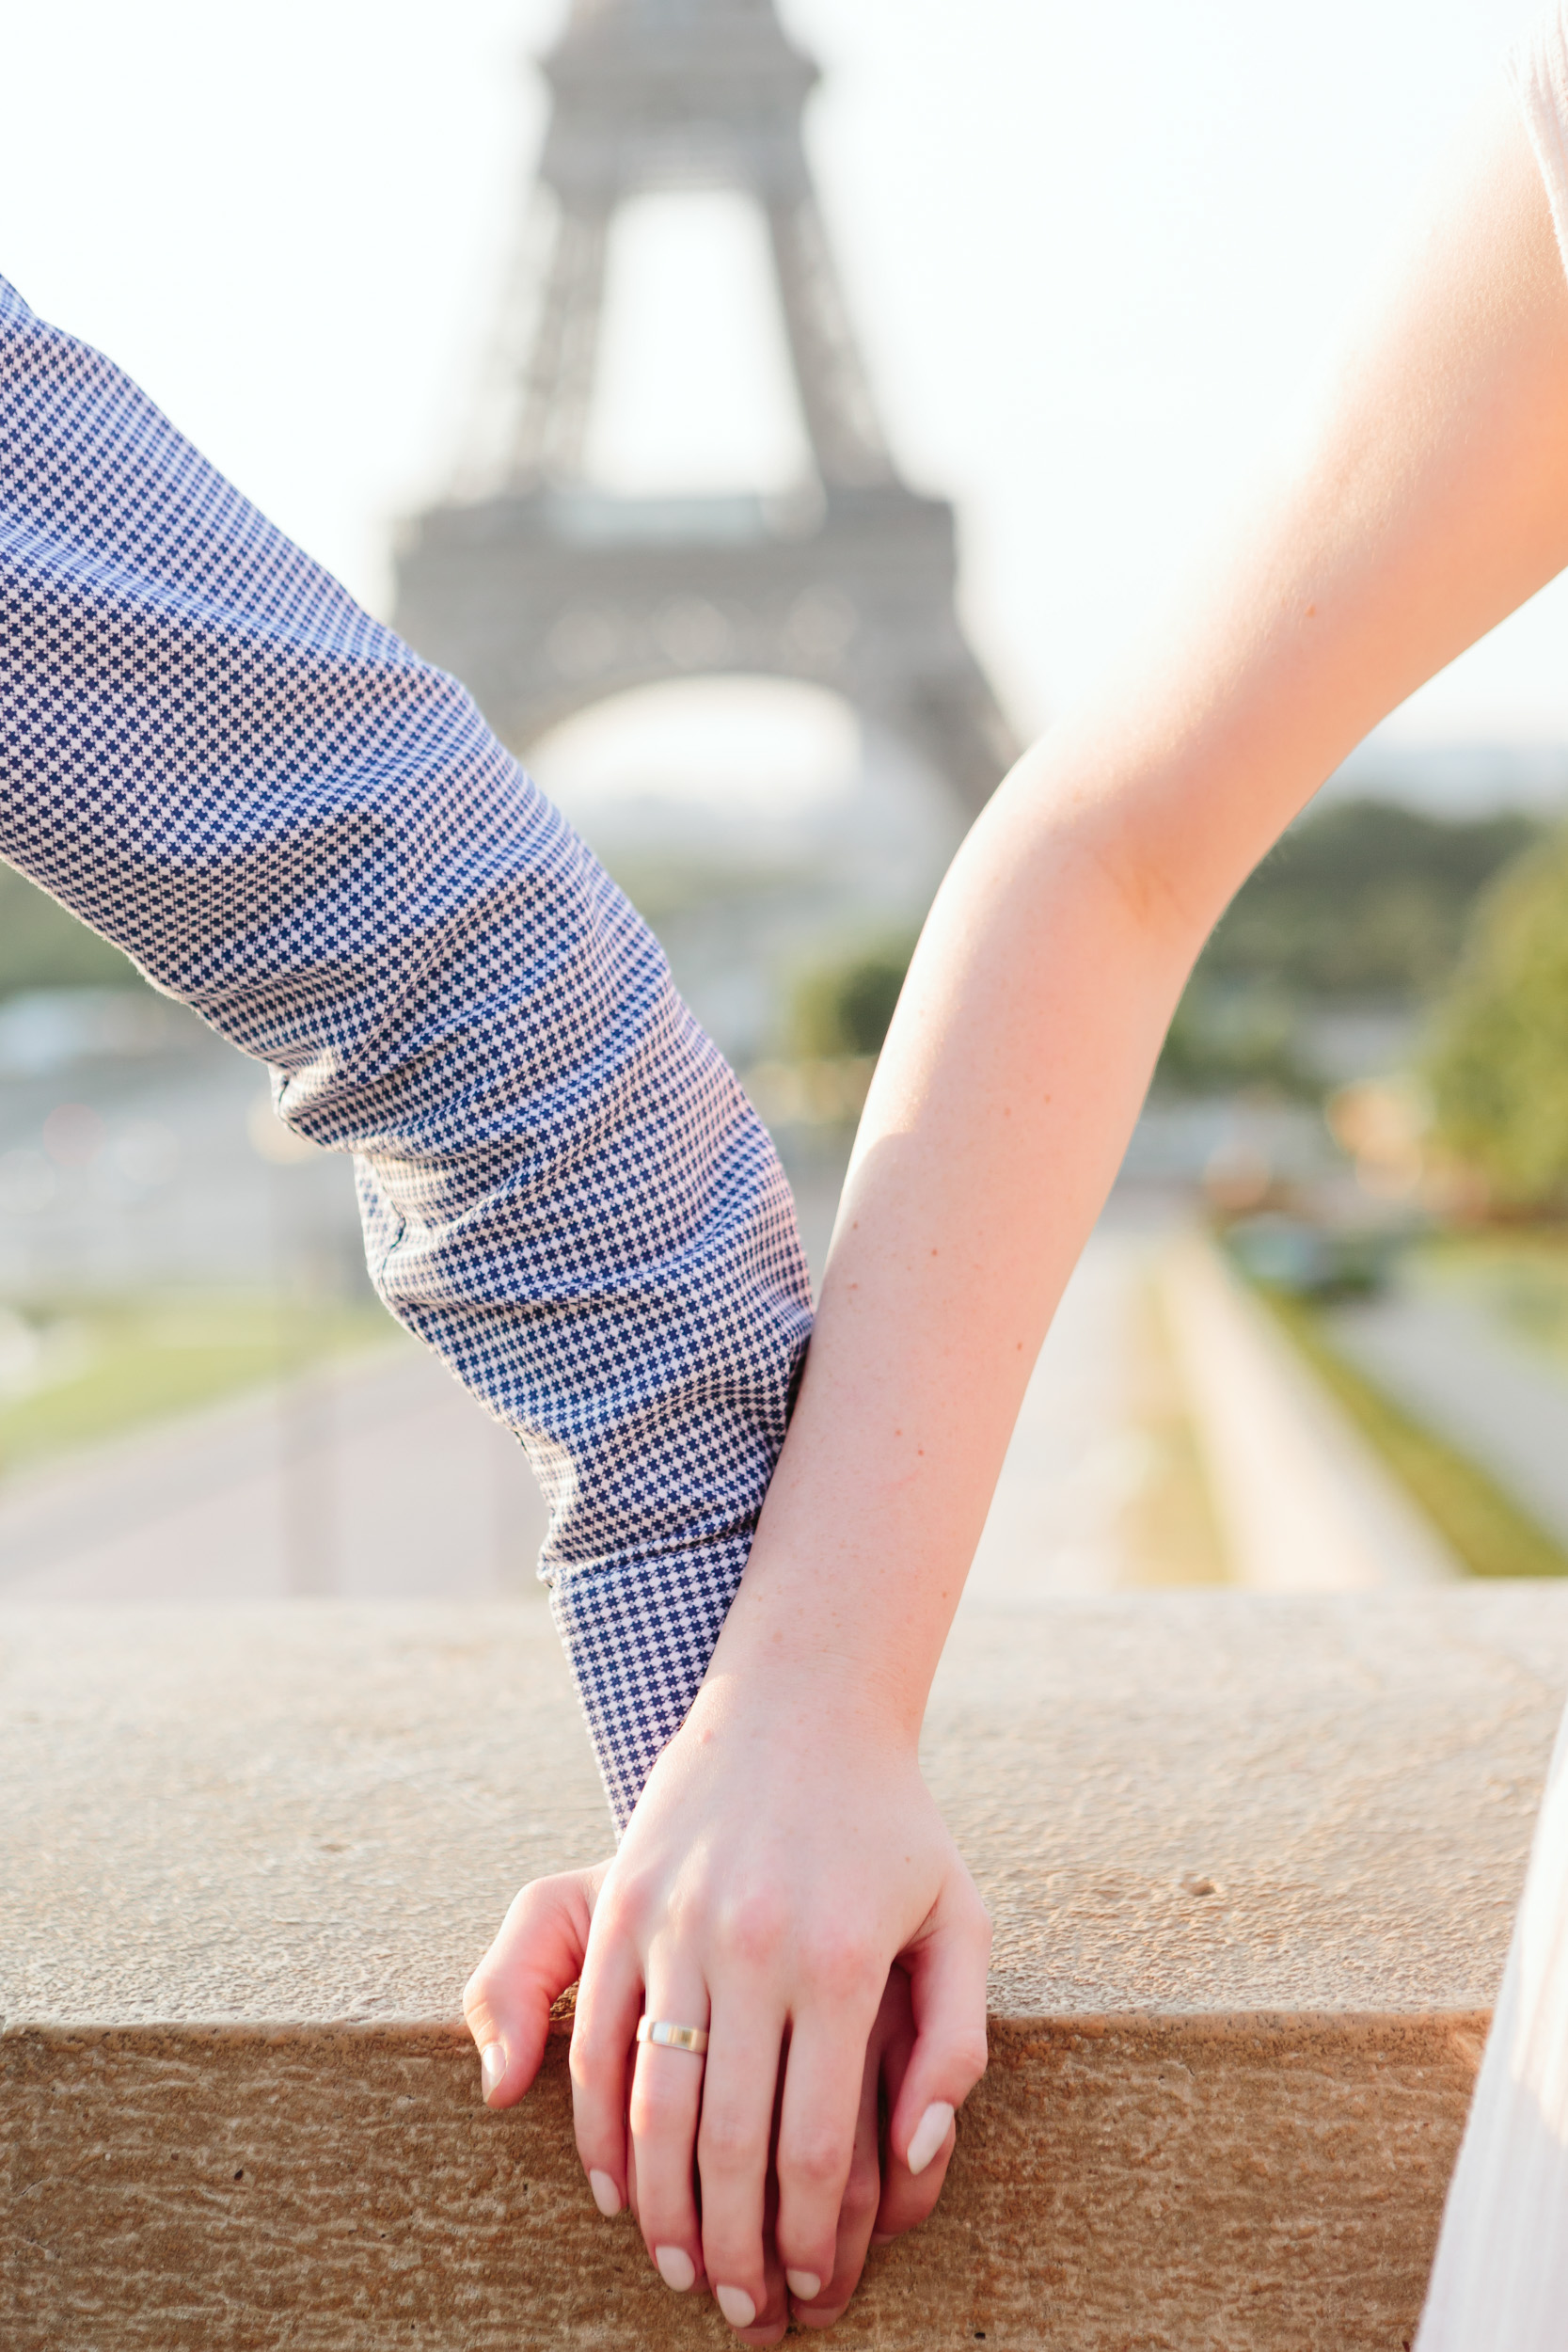 Holding hands next to the Eiffel Tower captured by Paris Photographer Federico Guendel IheartParisFr